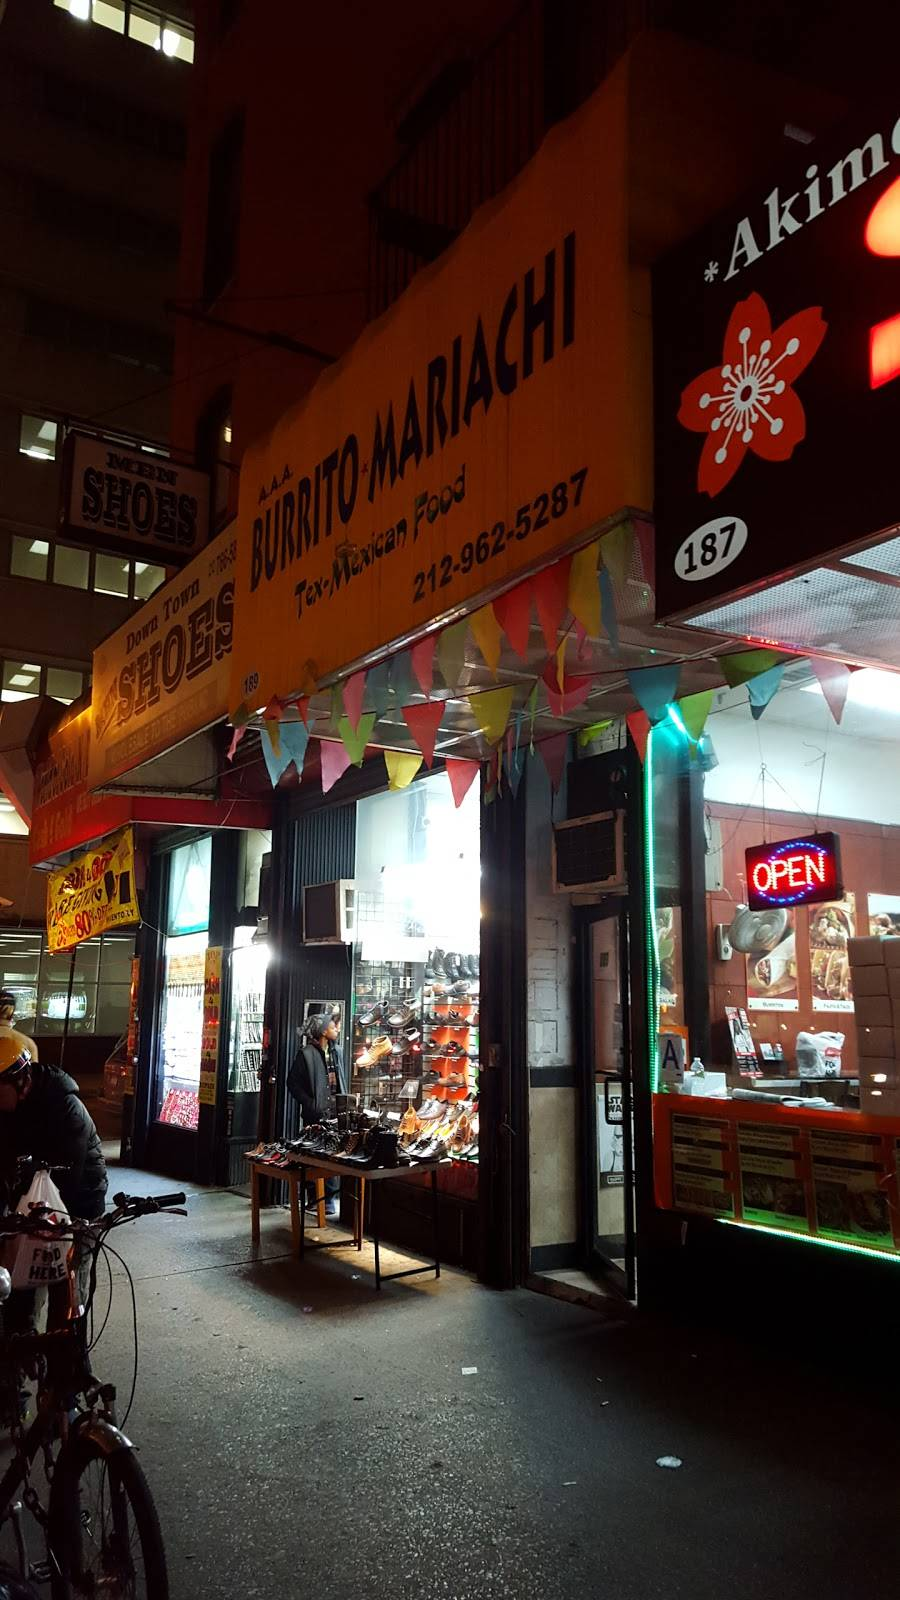 Burrito Mariachi | meal delivery | 189 Church St, New York, NY 10007, USA | 2129625287 OR +1 212-962-5287